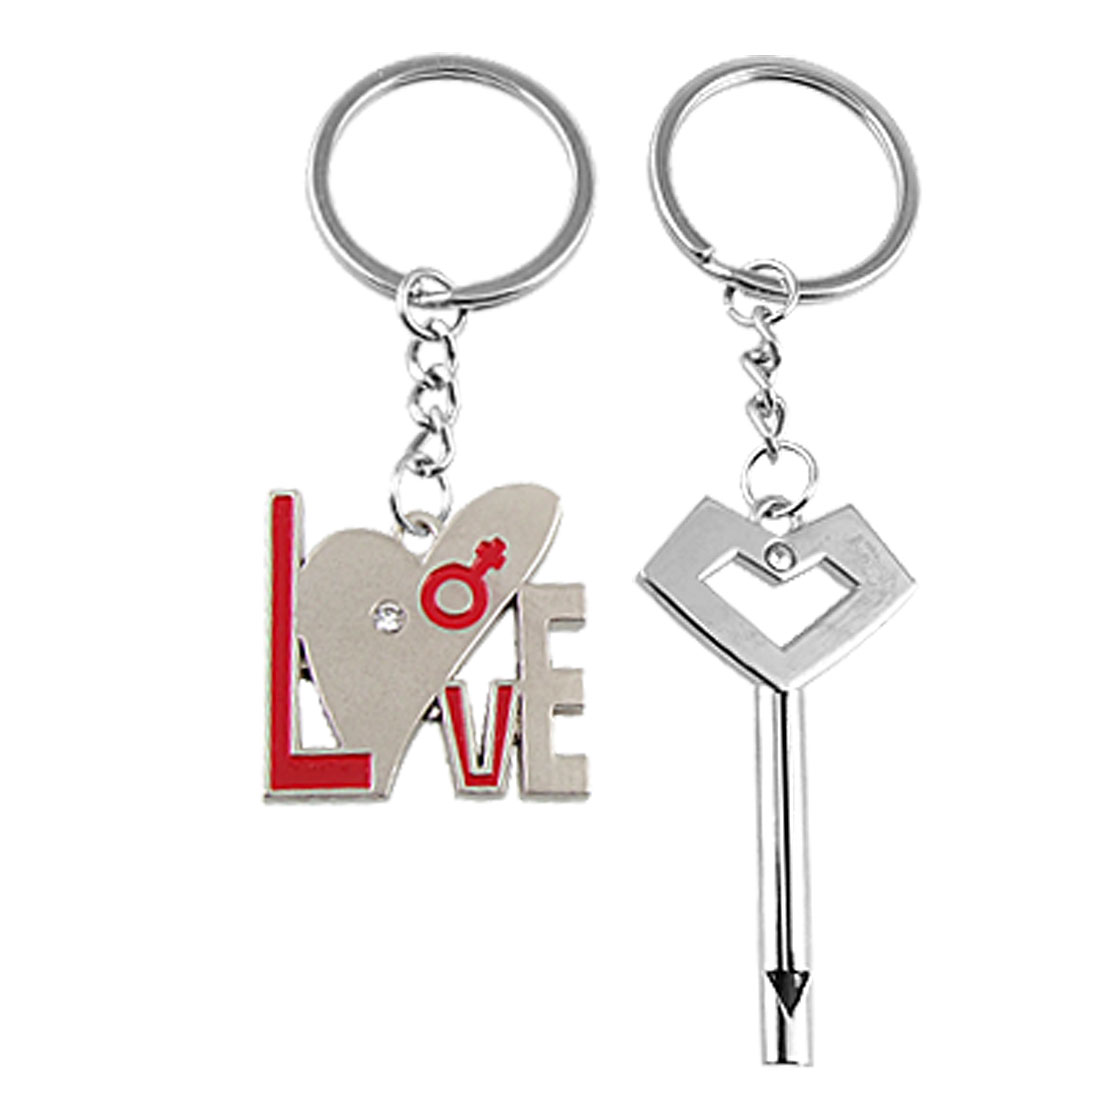 Pair of Silver Tone Metal Lovers Key Ring Keyring